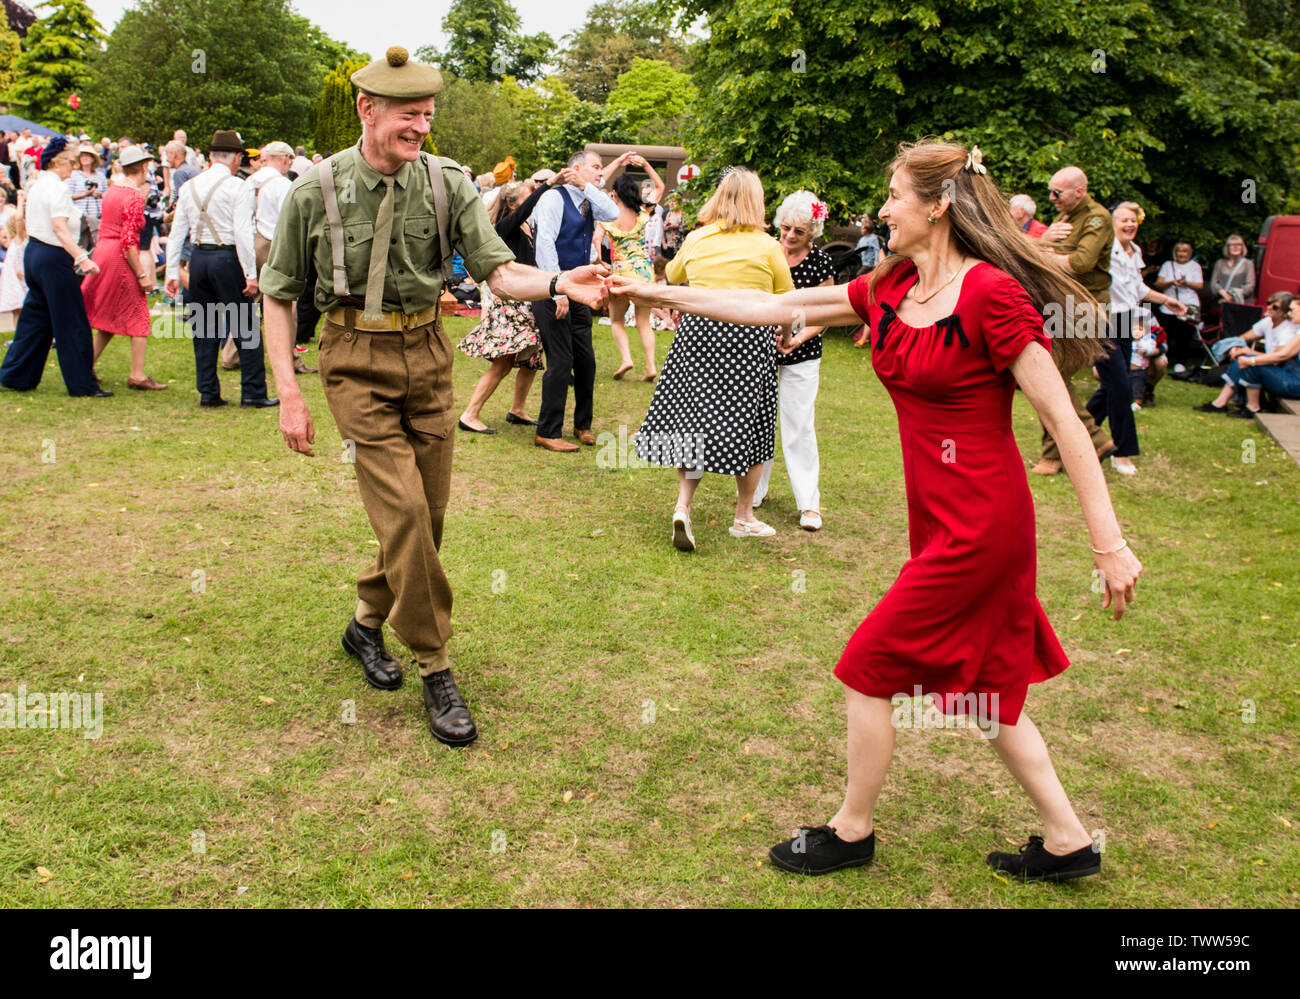 Couple swing dancing in authentic 1940s outfits Swing in Valley Gardens on 1940s Day, Harrogate, England, UK, 23rd June 2019. Stock Photo